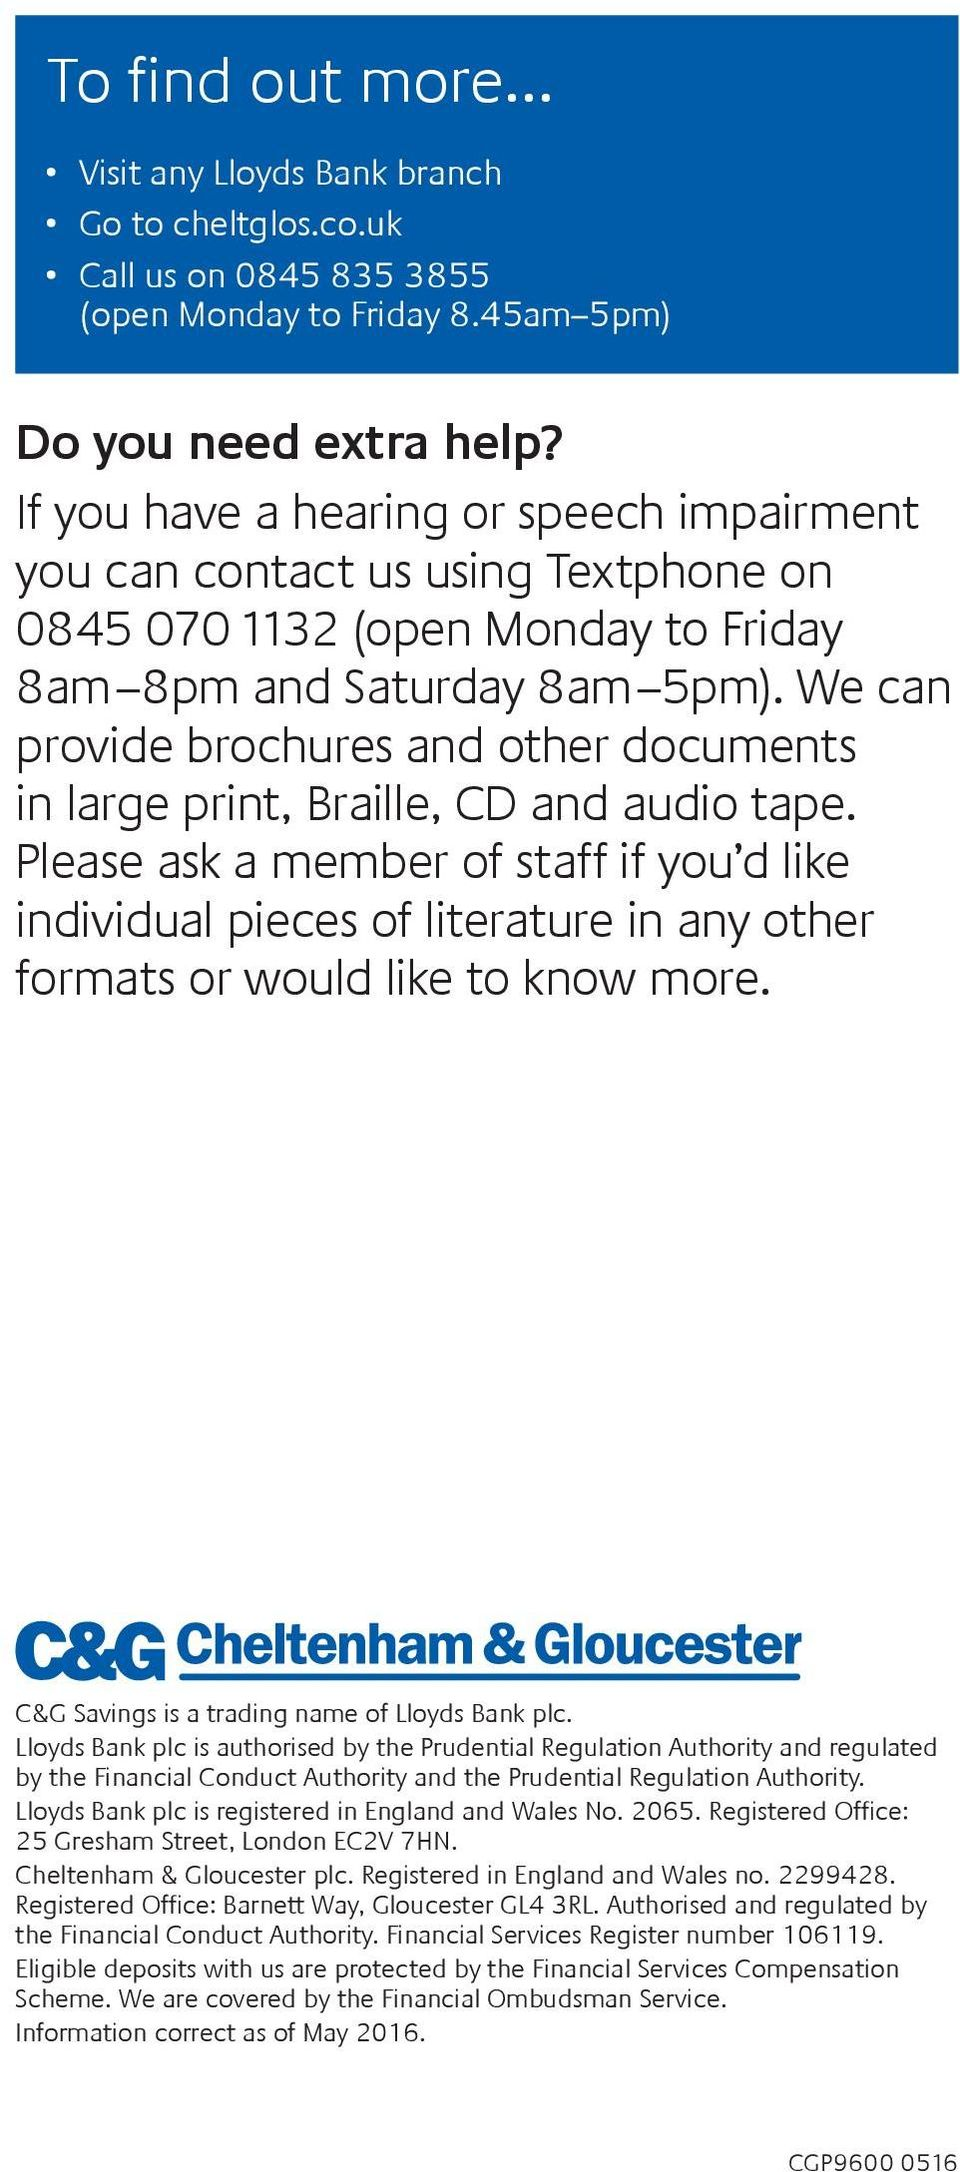 We can provide brochures and other documents in large print, Braille, CD and audio tape.